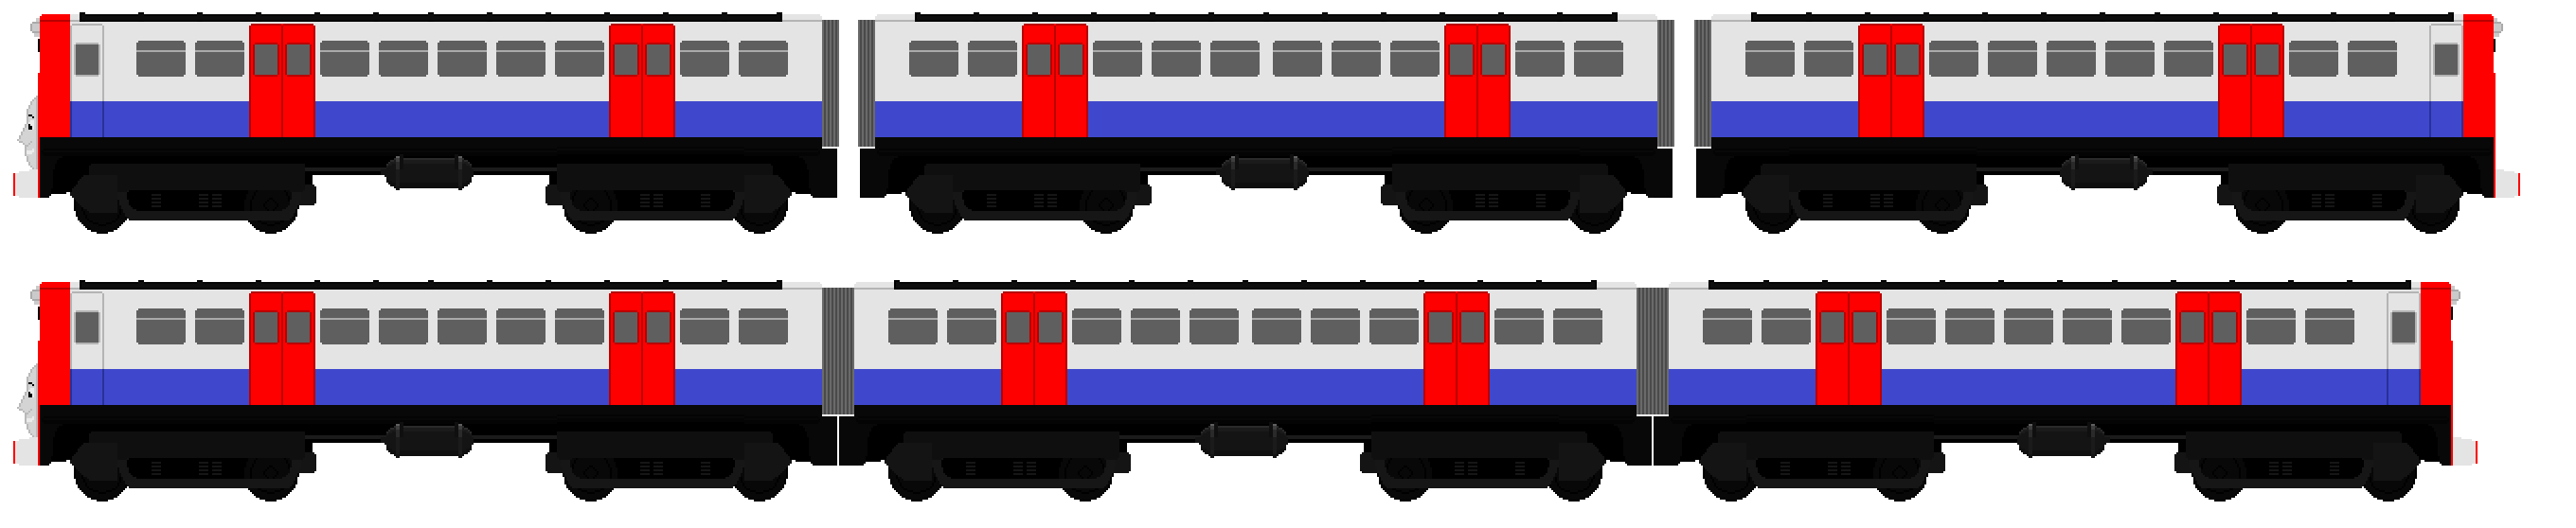 . PlusPng.com London Passenager train design 3 by JamesFan1991 - Trains PNG Side View